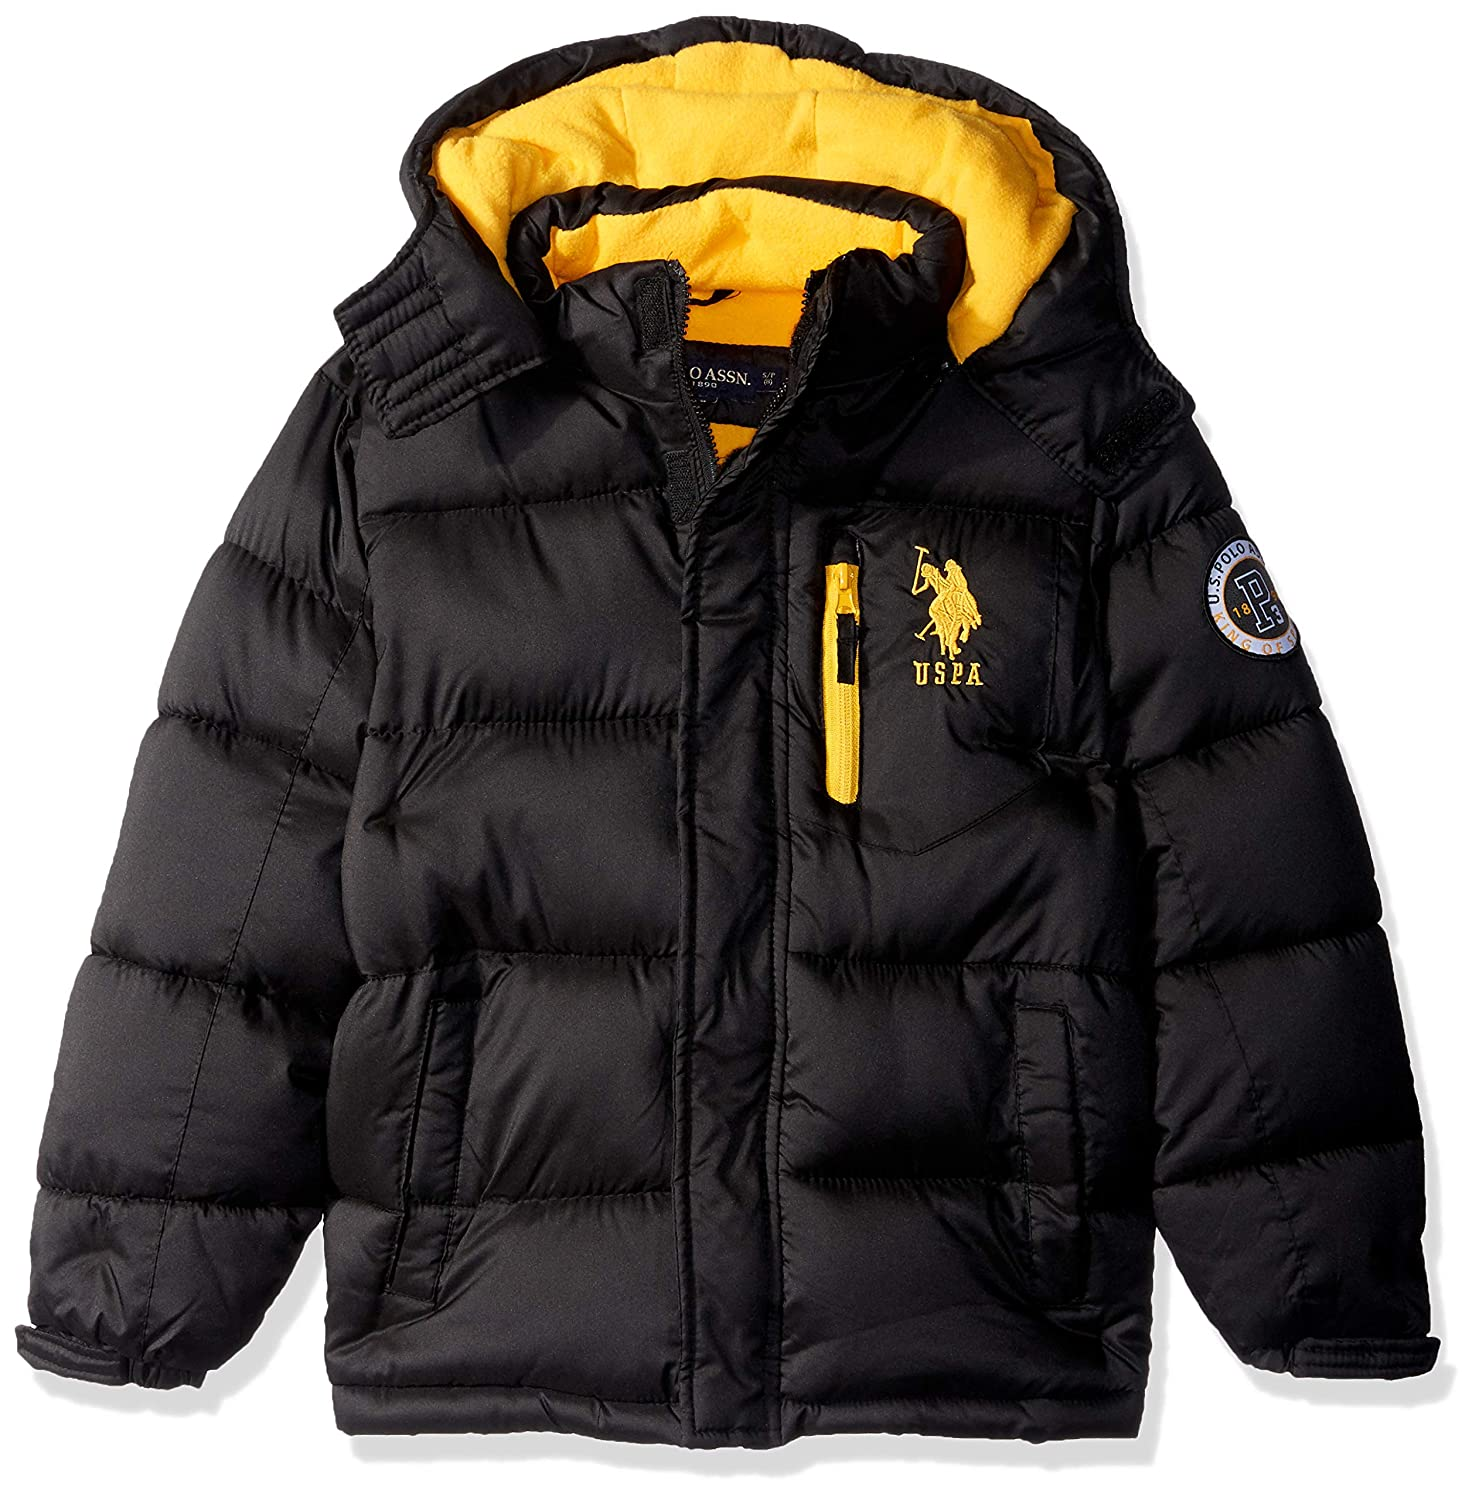 U.S. Polo Assn. Boys' Bubble Jacket US Polo Association O_UD71H